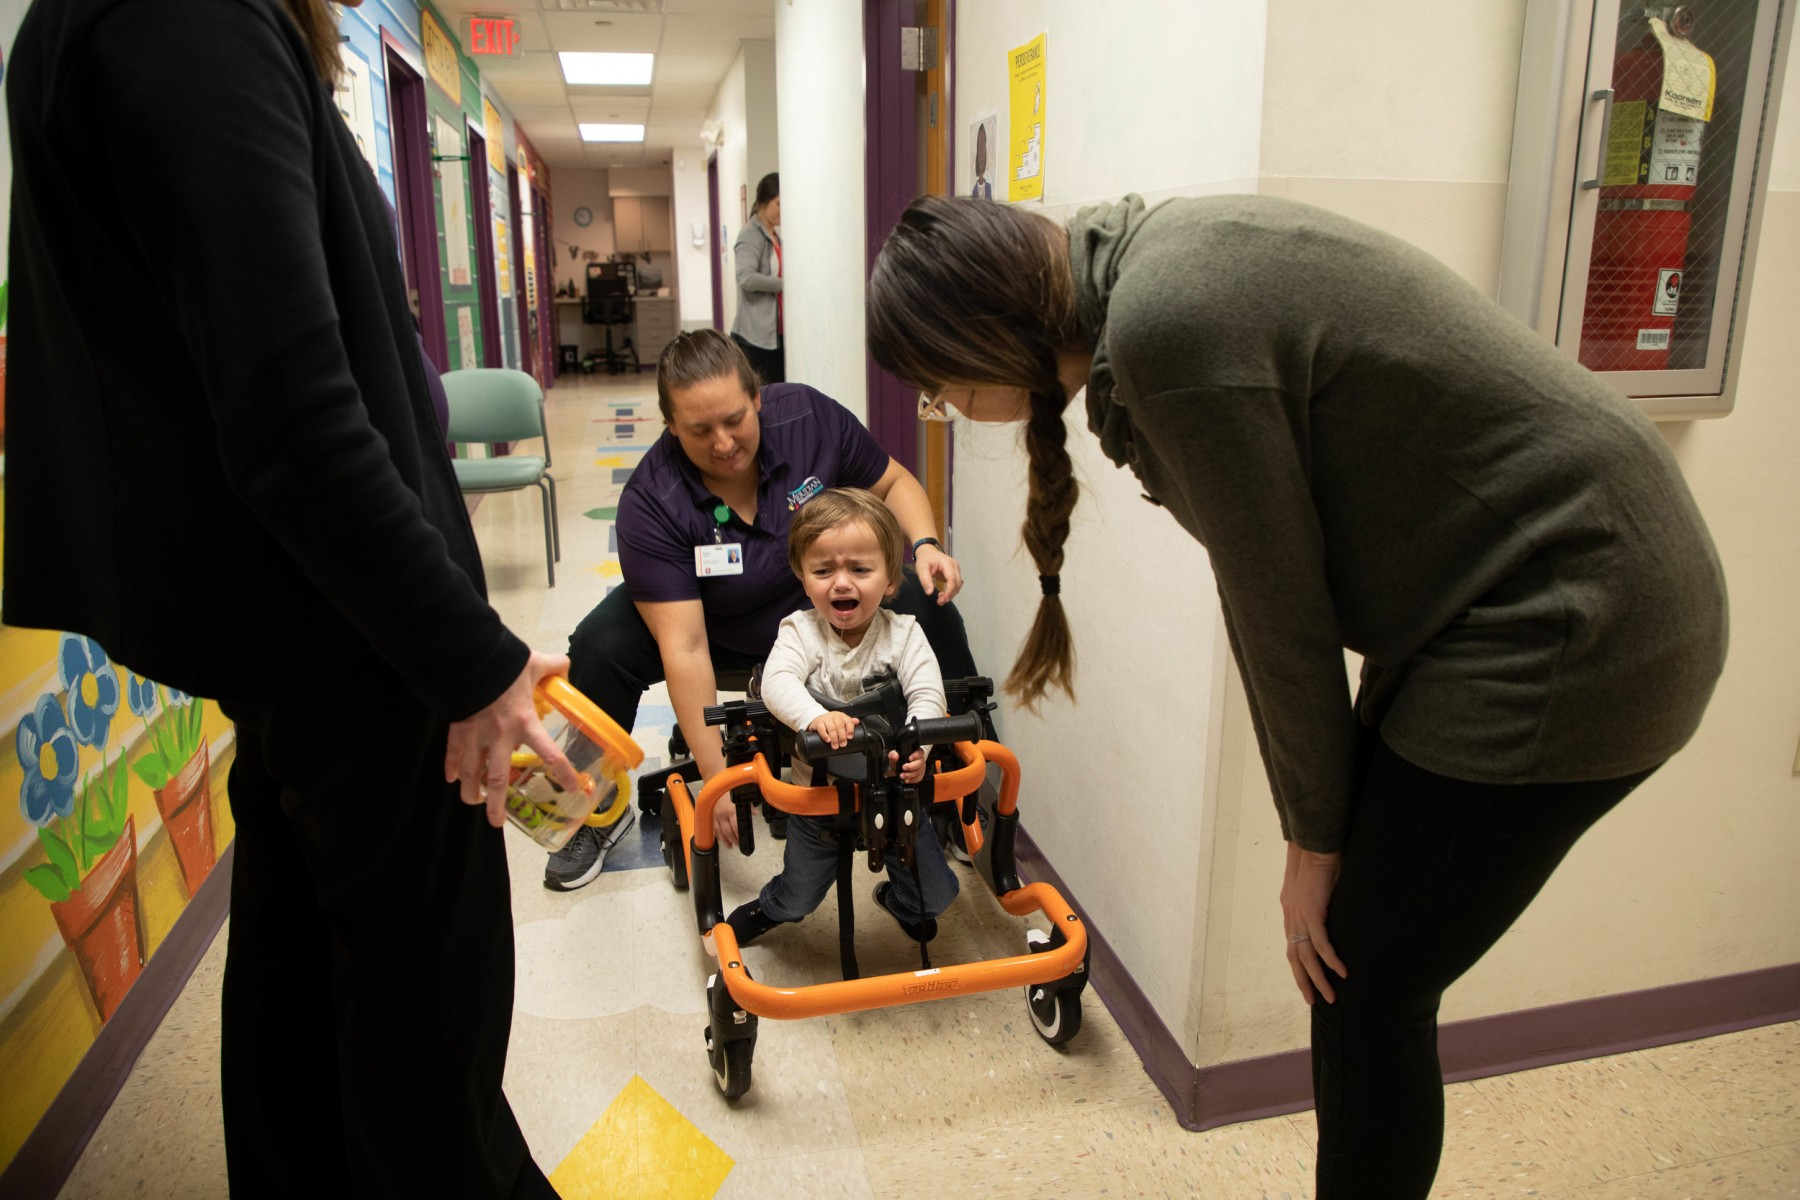 Kam throws a fit during therapy at Meridian Health Services in Muncie, Ind. Friday, Feb. 22, 2019. Kam visits Meridian twice a week to work on physical and cognative skills.